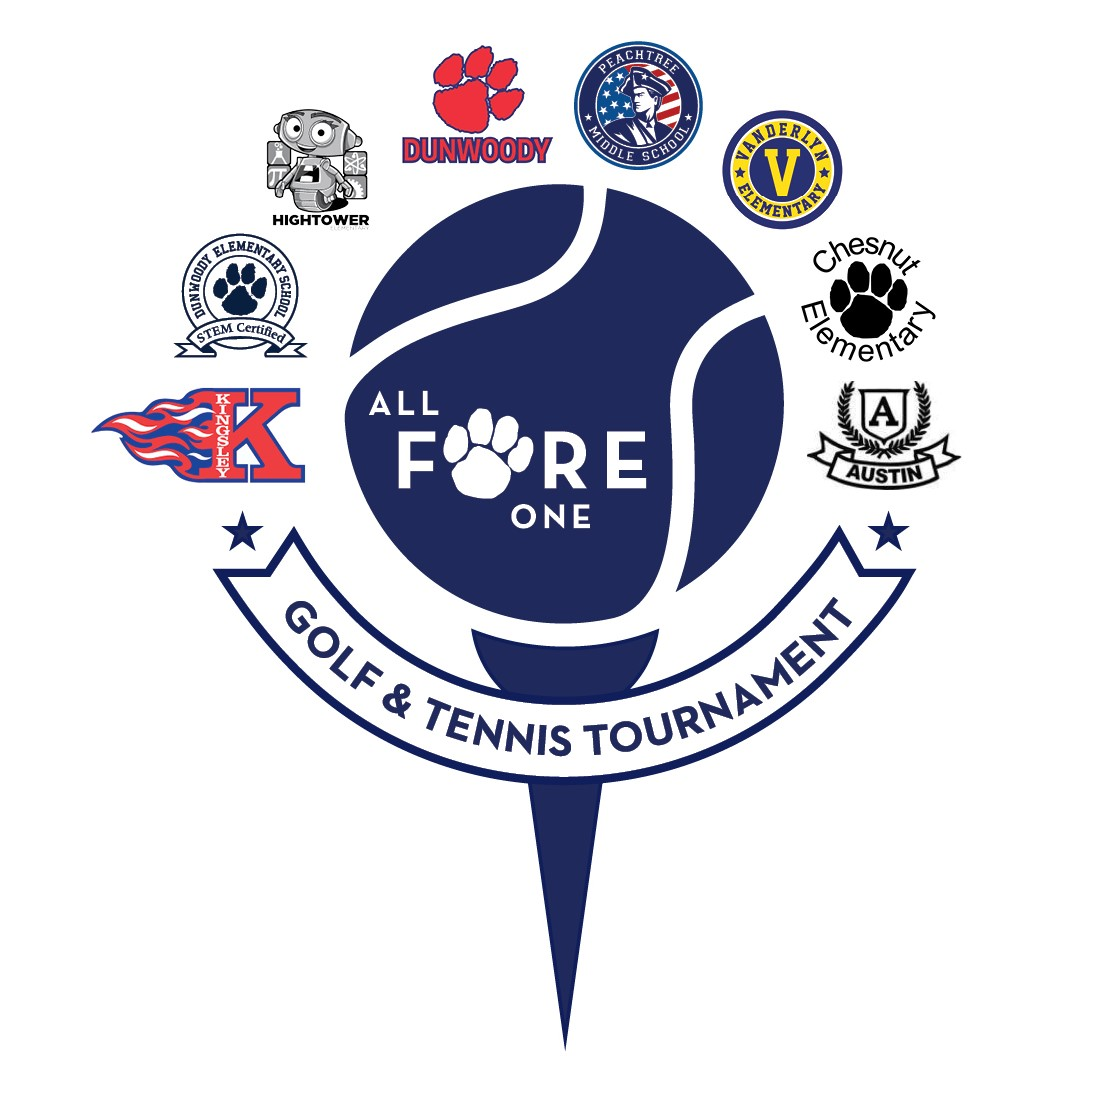 All Fore One Golf & Tennis Tournament - Default Image of Tennis Sponsor